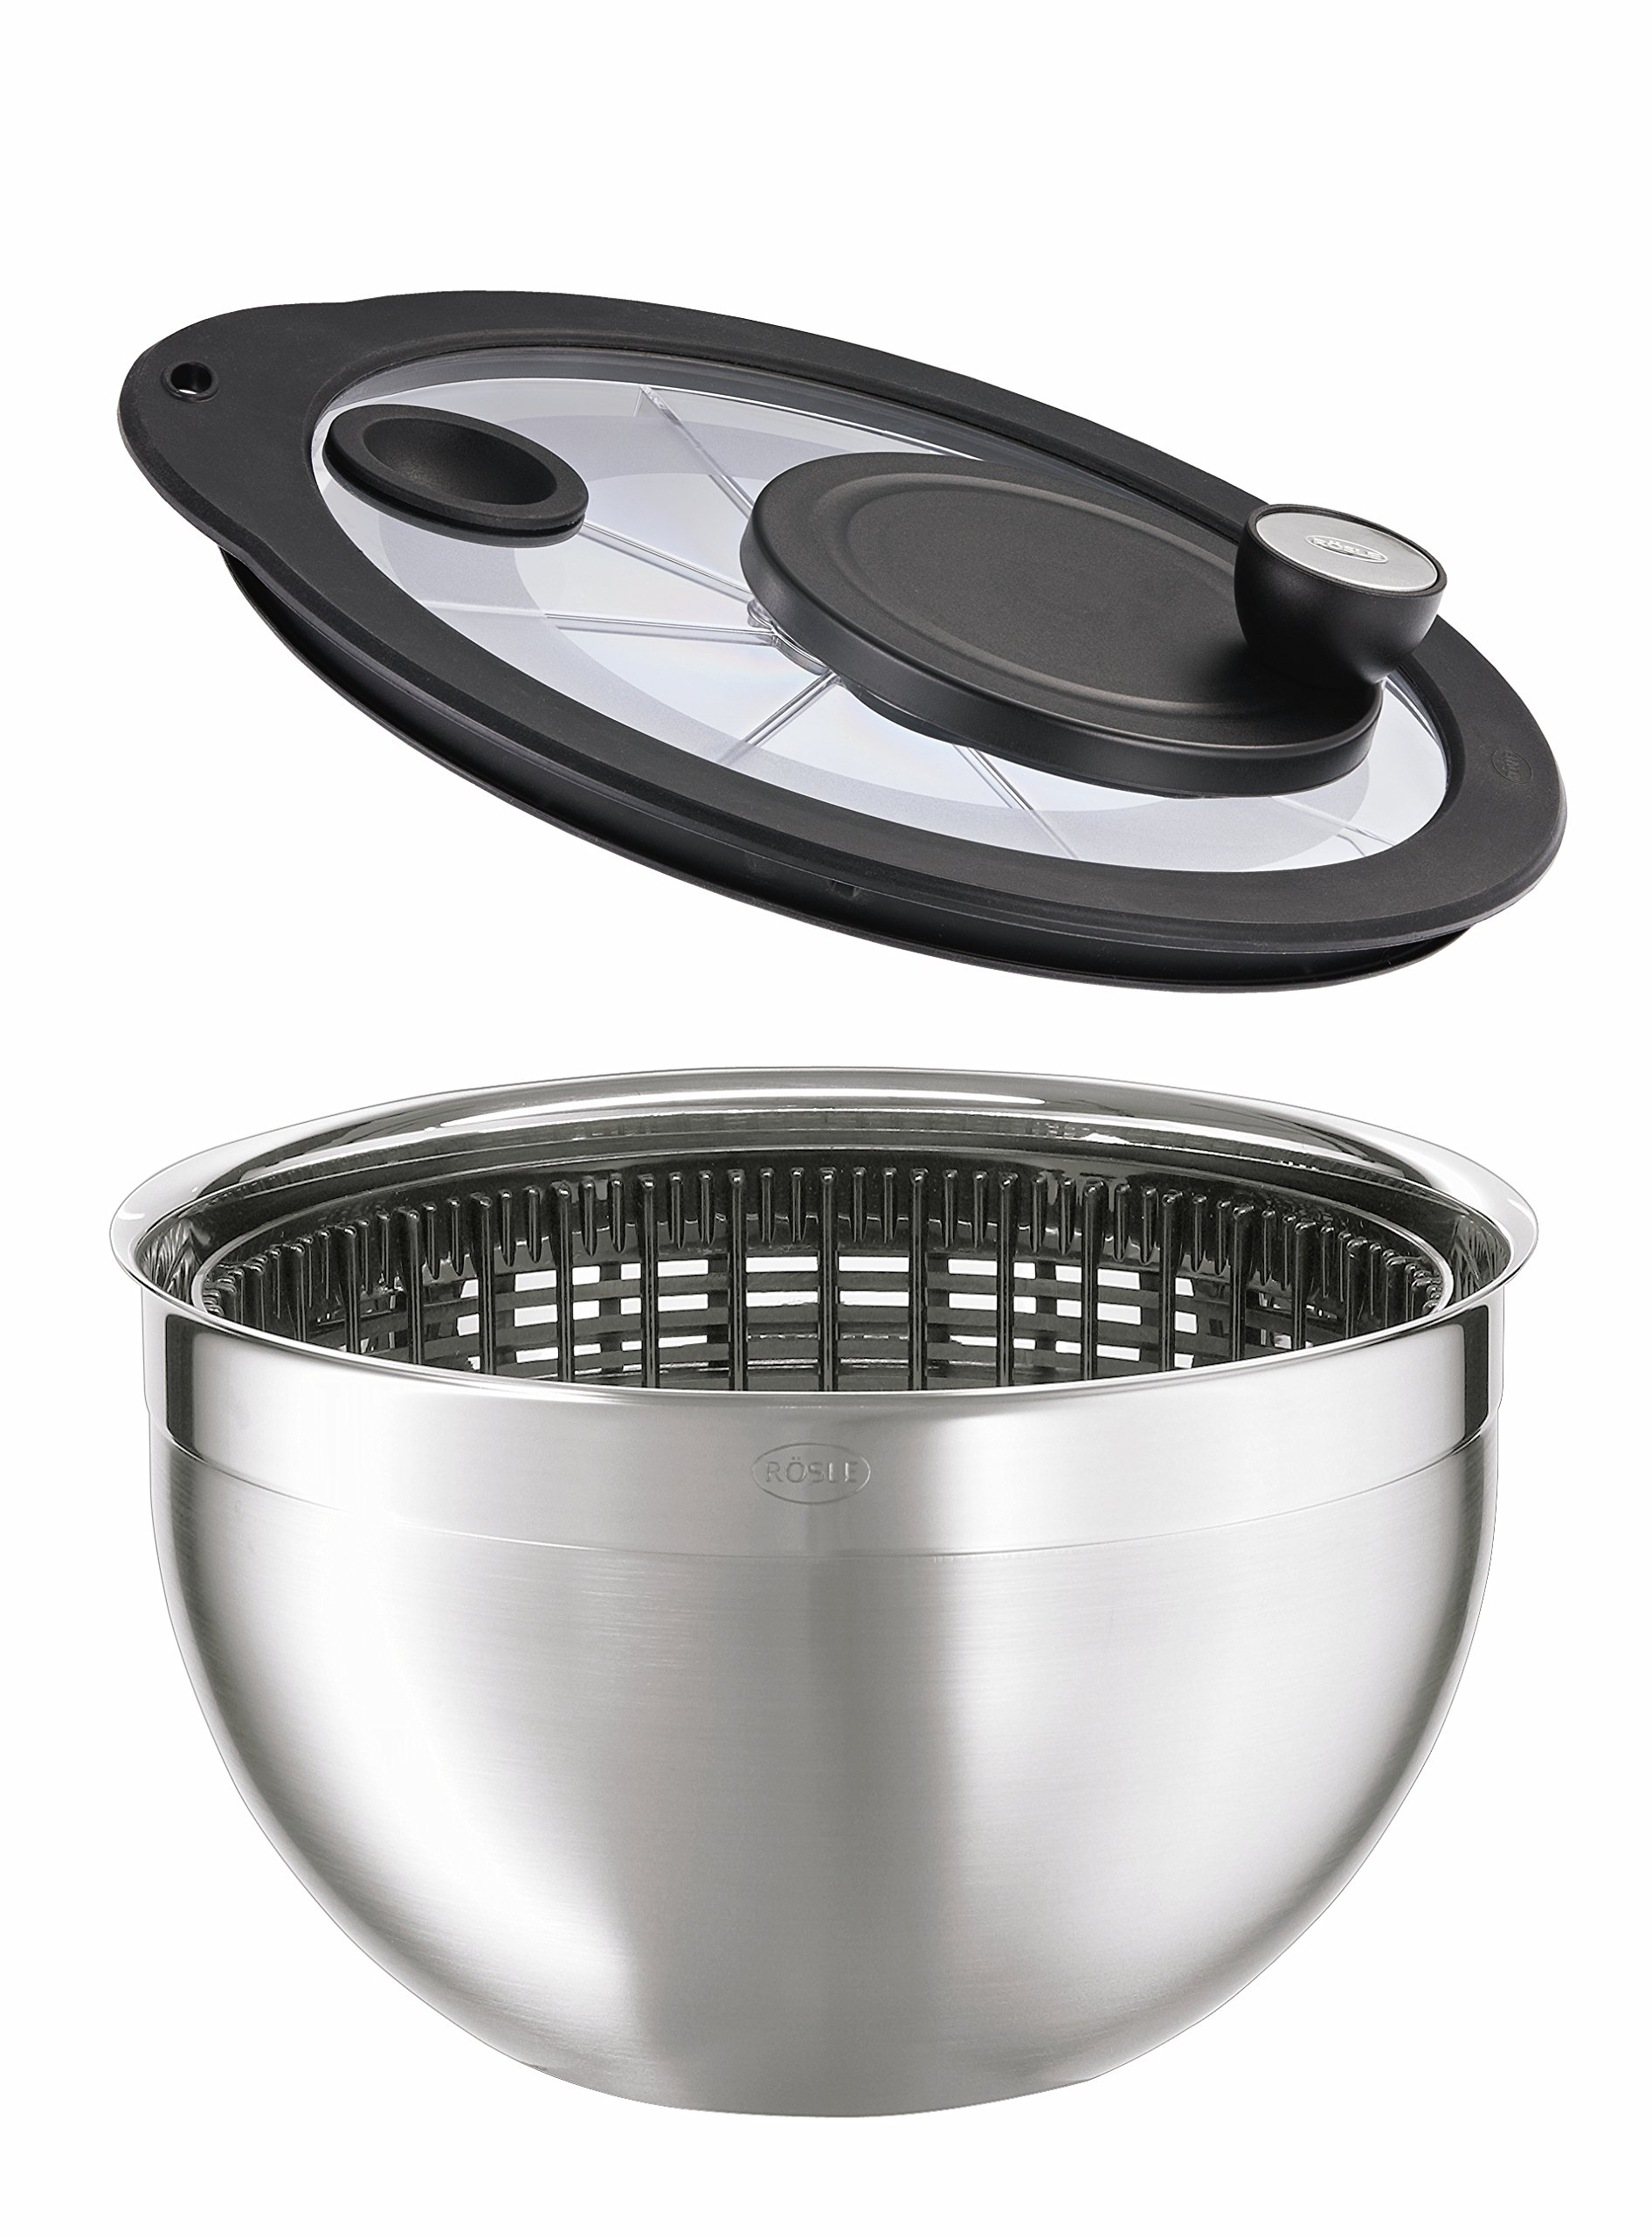 Rosle Stainless Steel 5.7 Quart Salad Spinner with Glass Lid